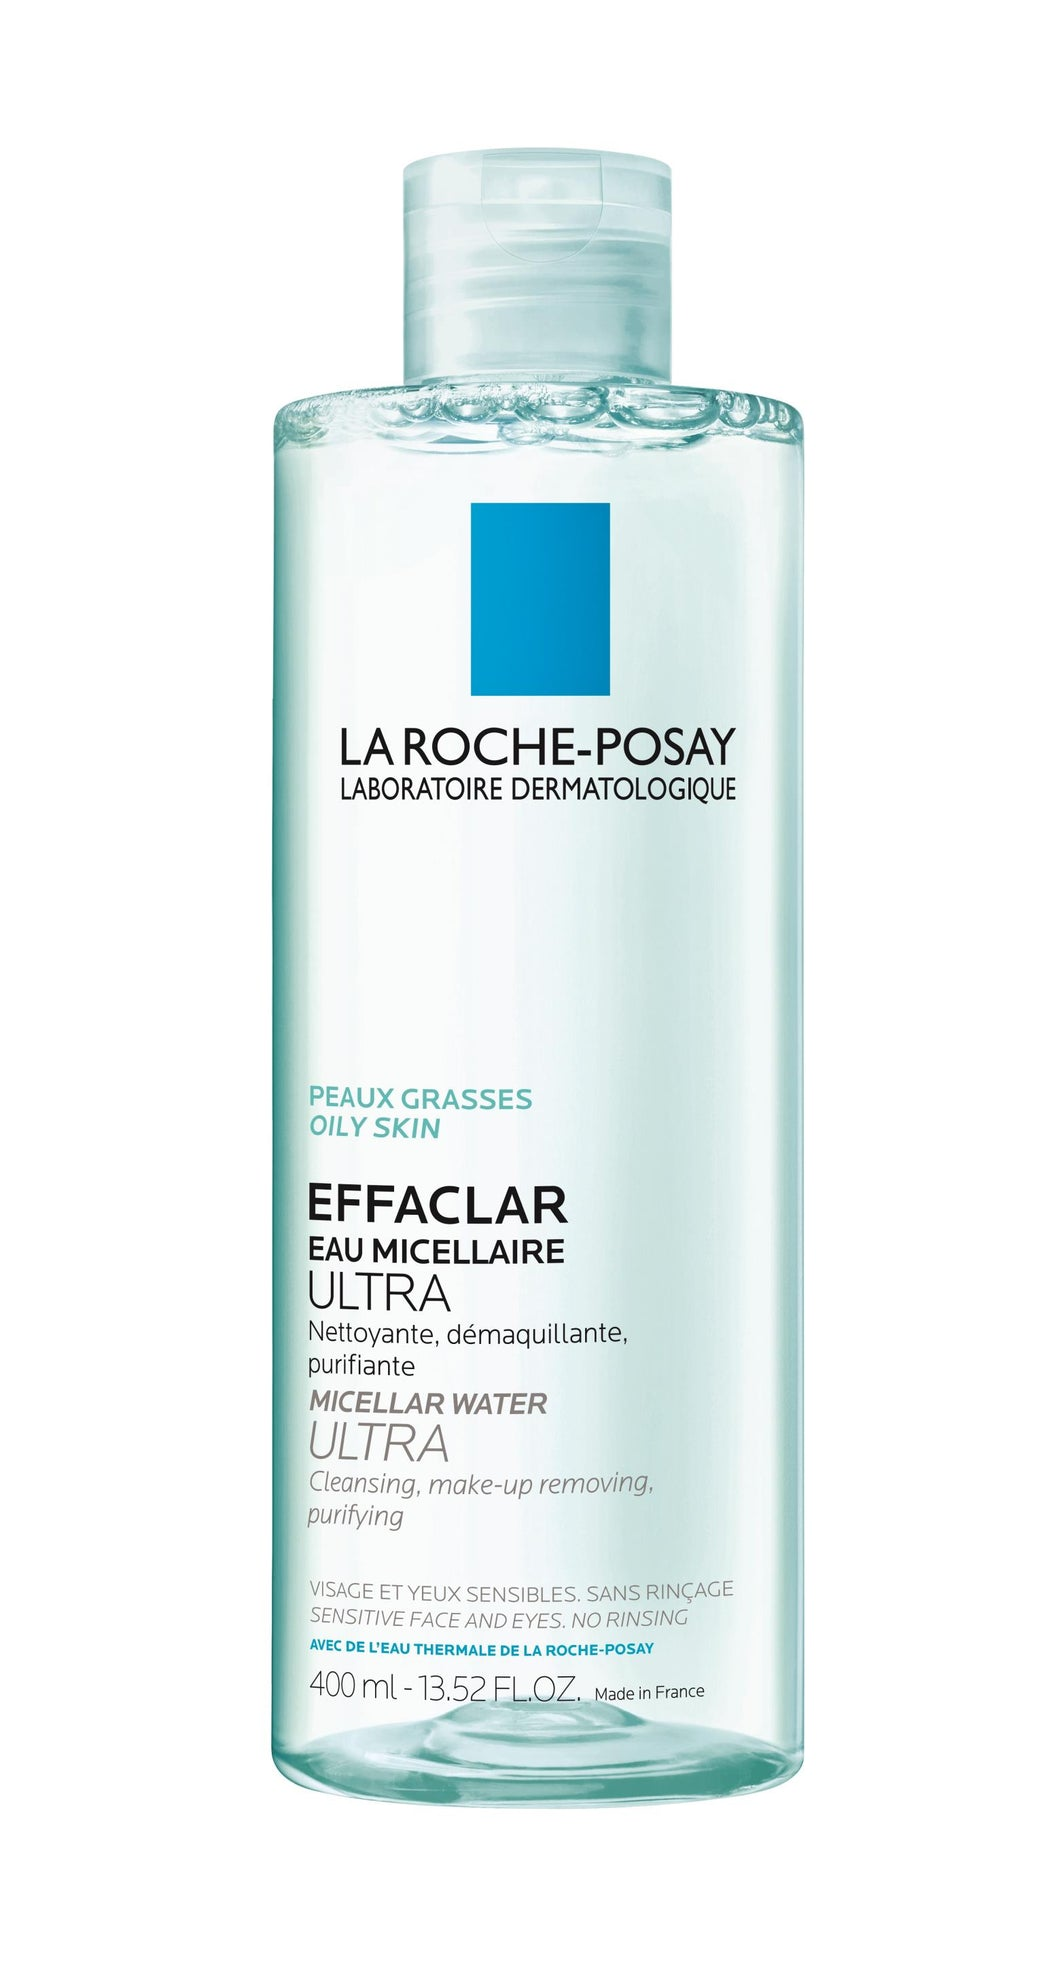 Effaclar Micellair Water 400ml